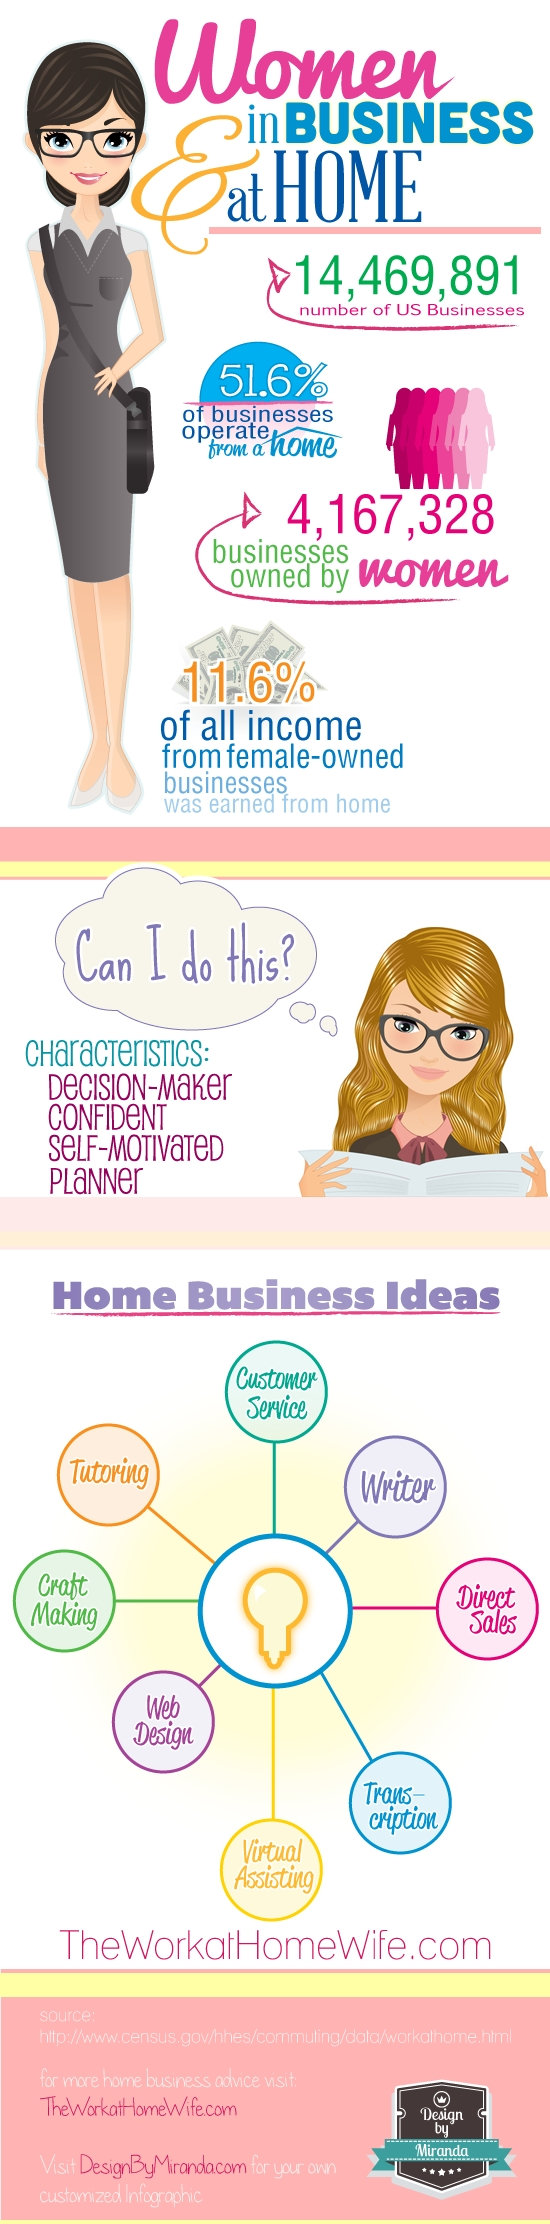 10 Stylish Great Home Based Business Ideas women in home based business infographic infographic business 2021